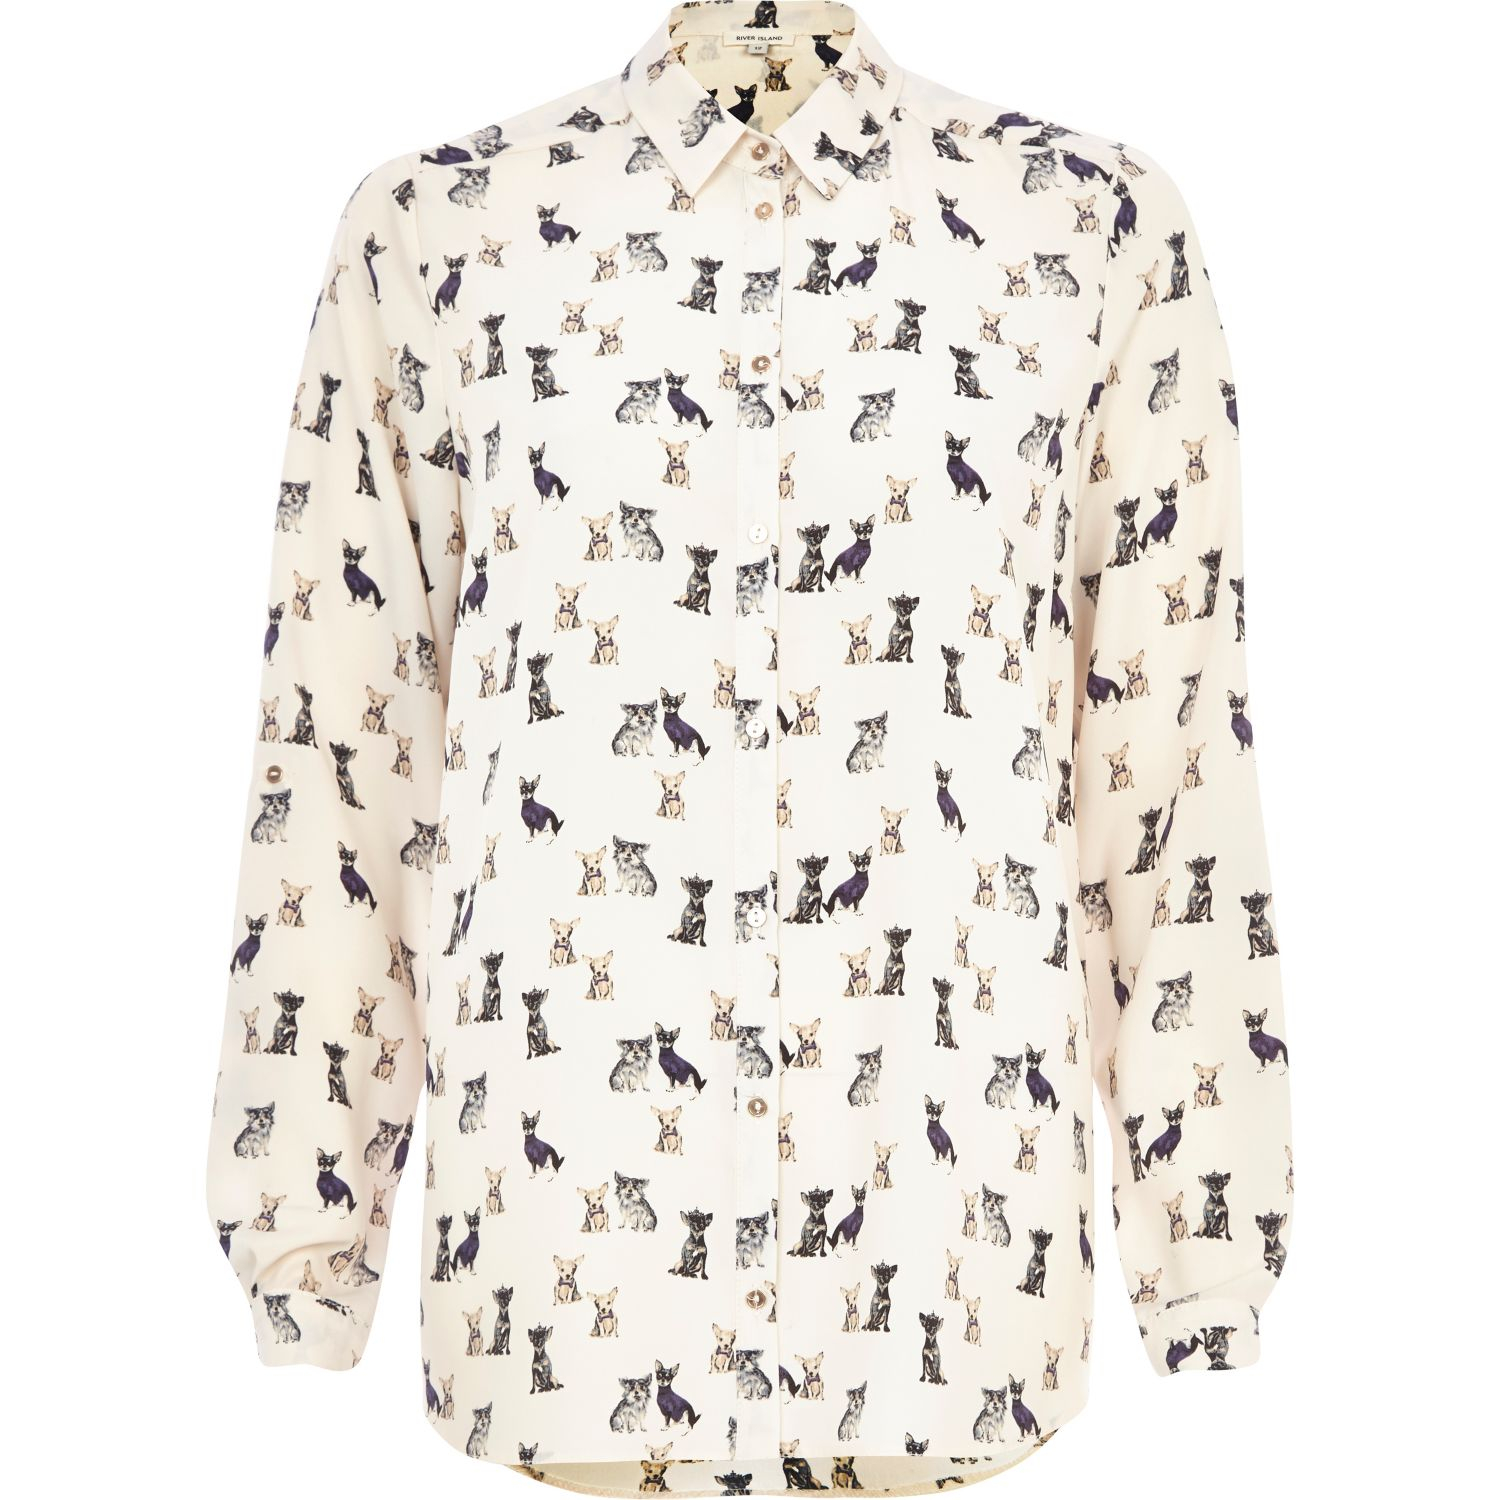 759a074f8 River Island Dog Print Oversized Shirt in Natural - Lyst